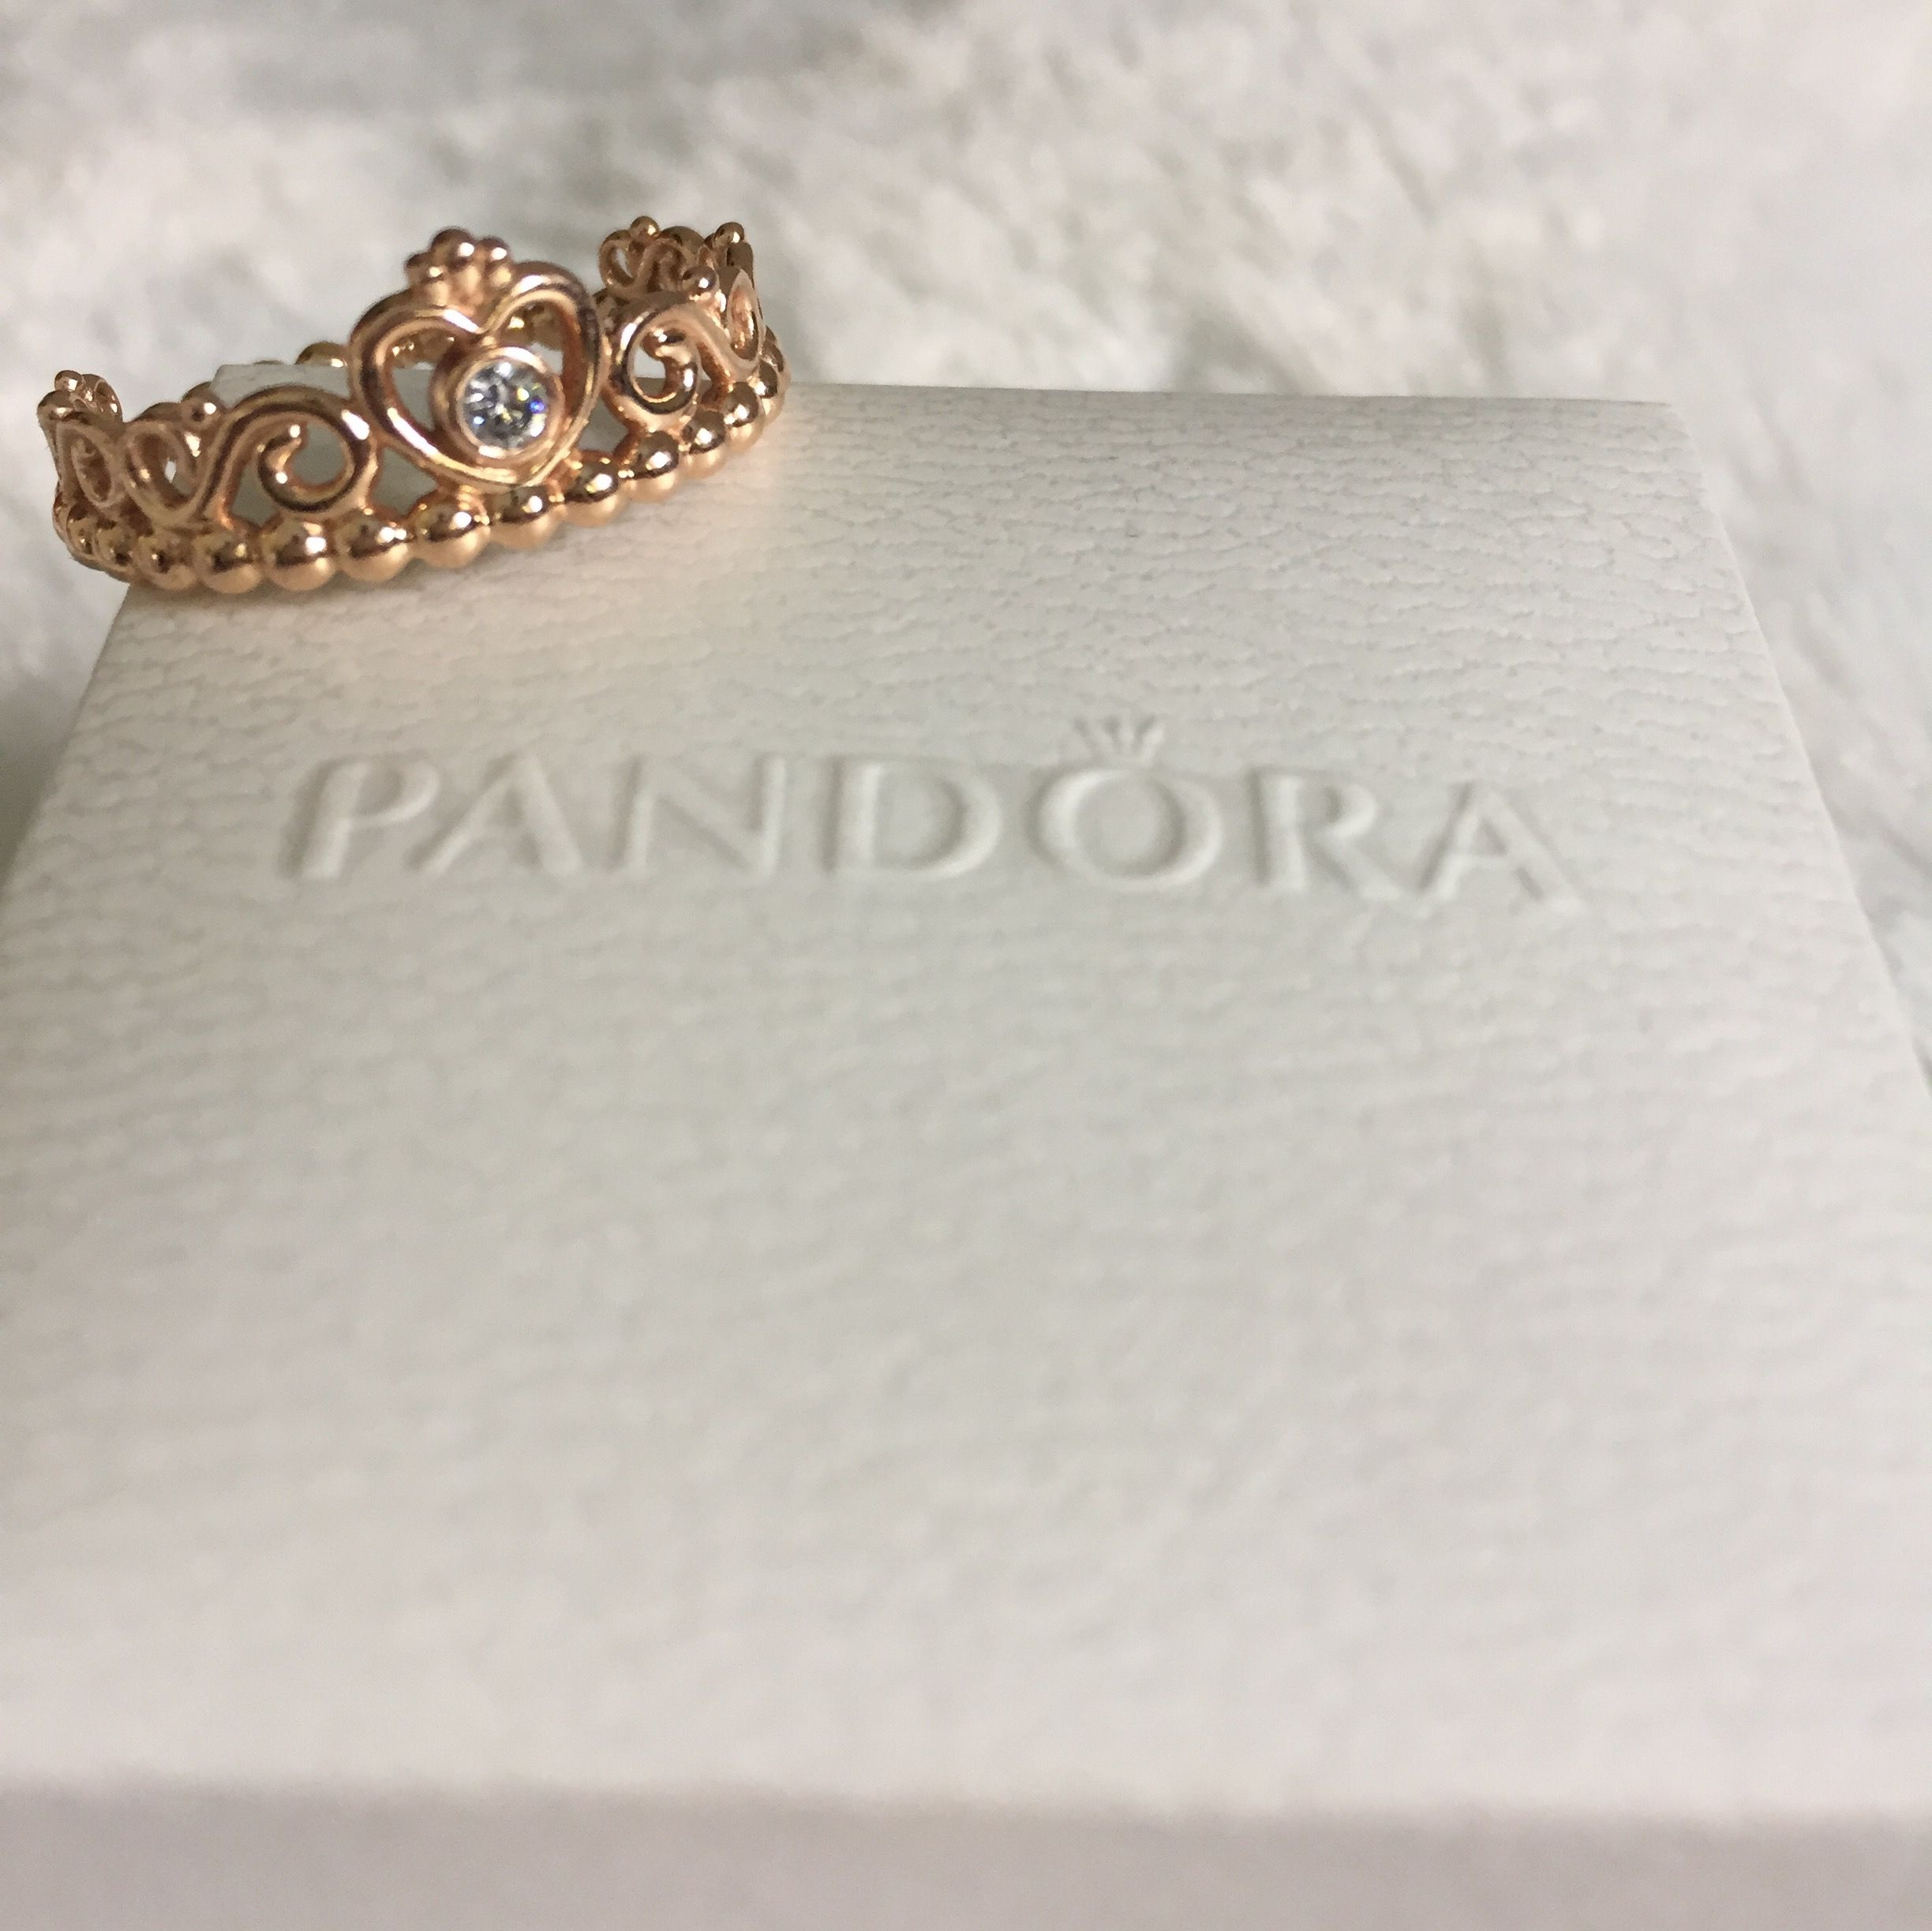 PANDORA Rose Princess Tiara Ring Princess tiara ring